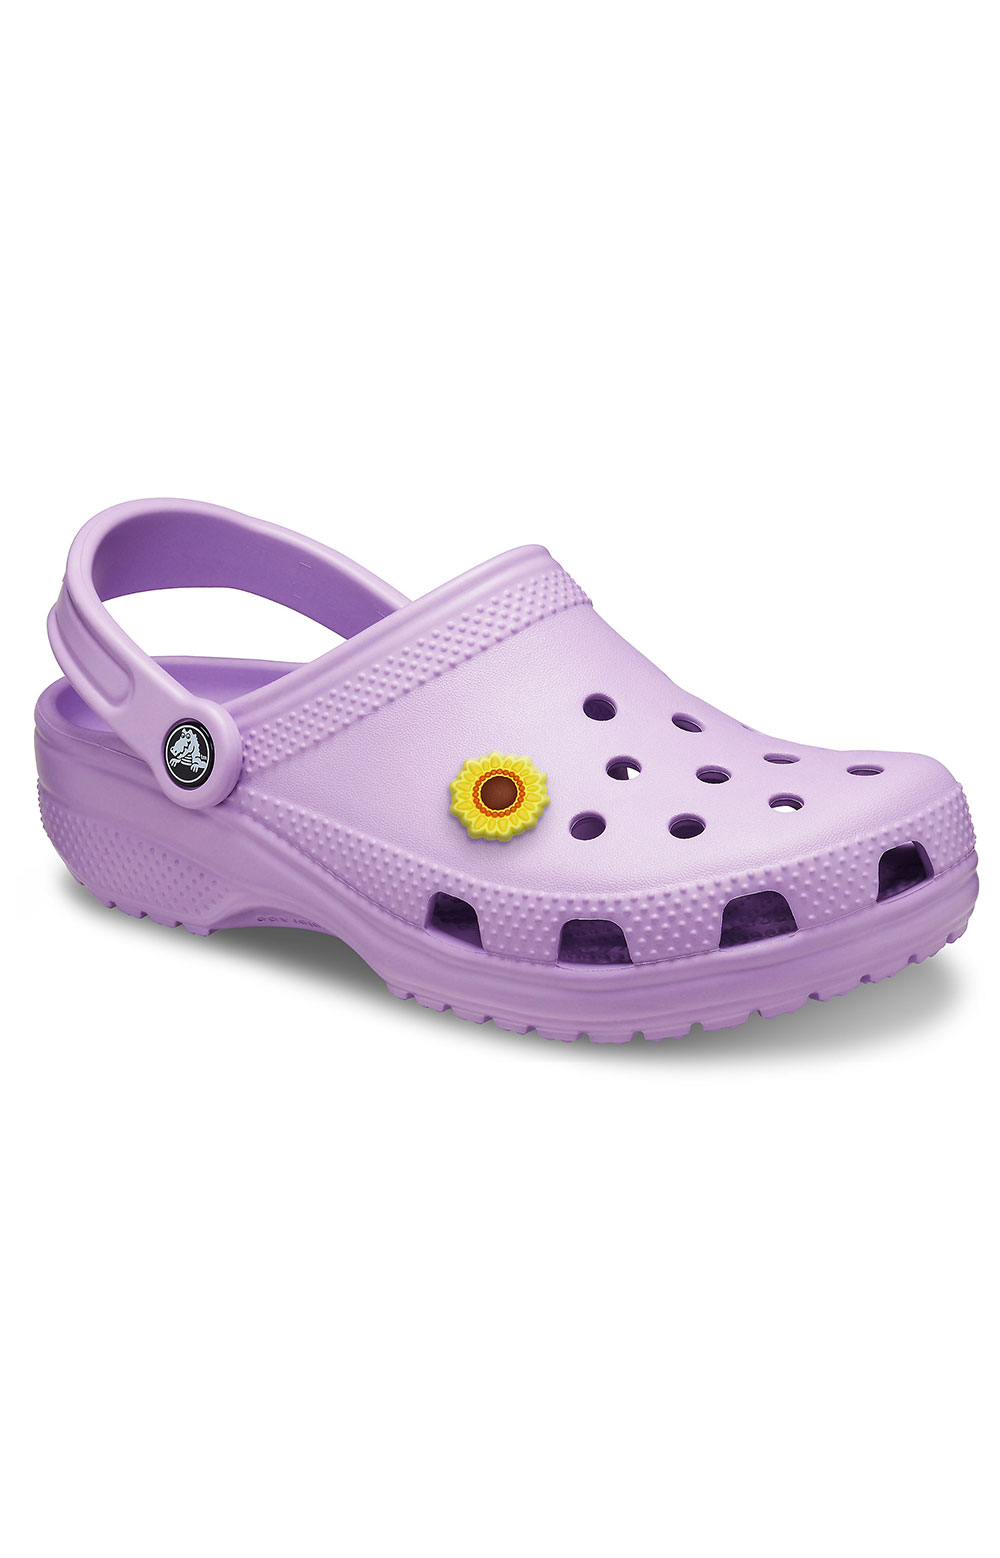 Classic Clogs - Orchid  6